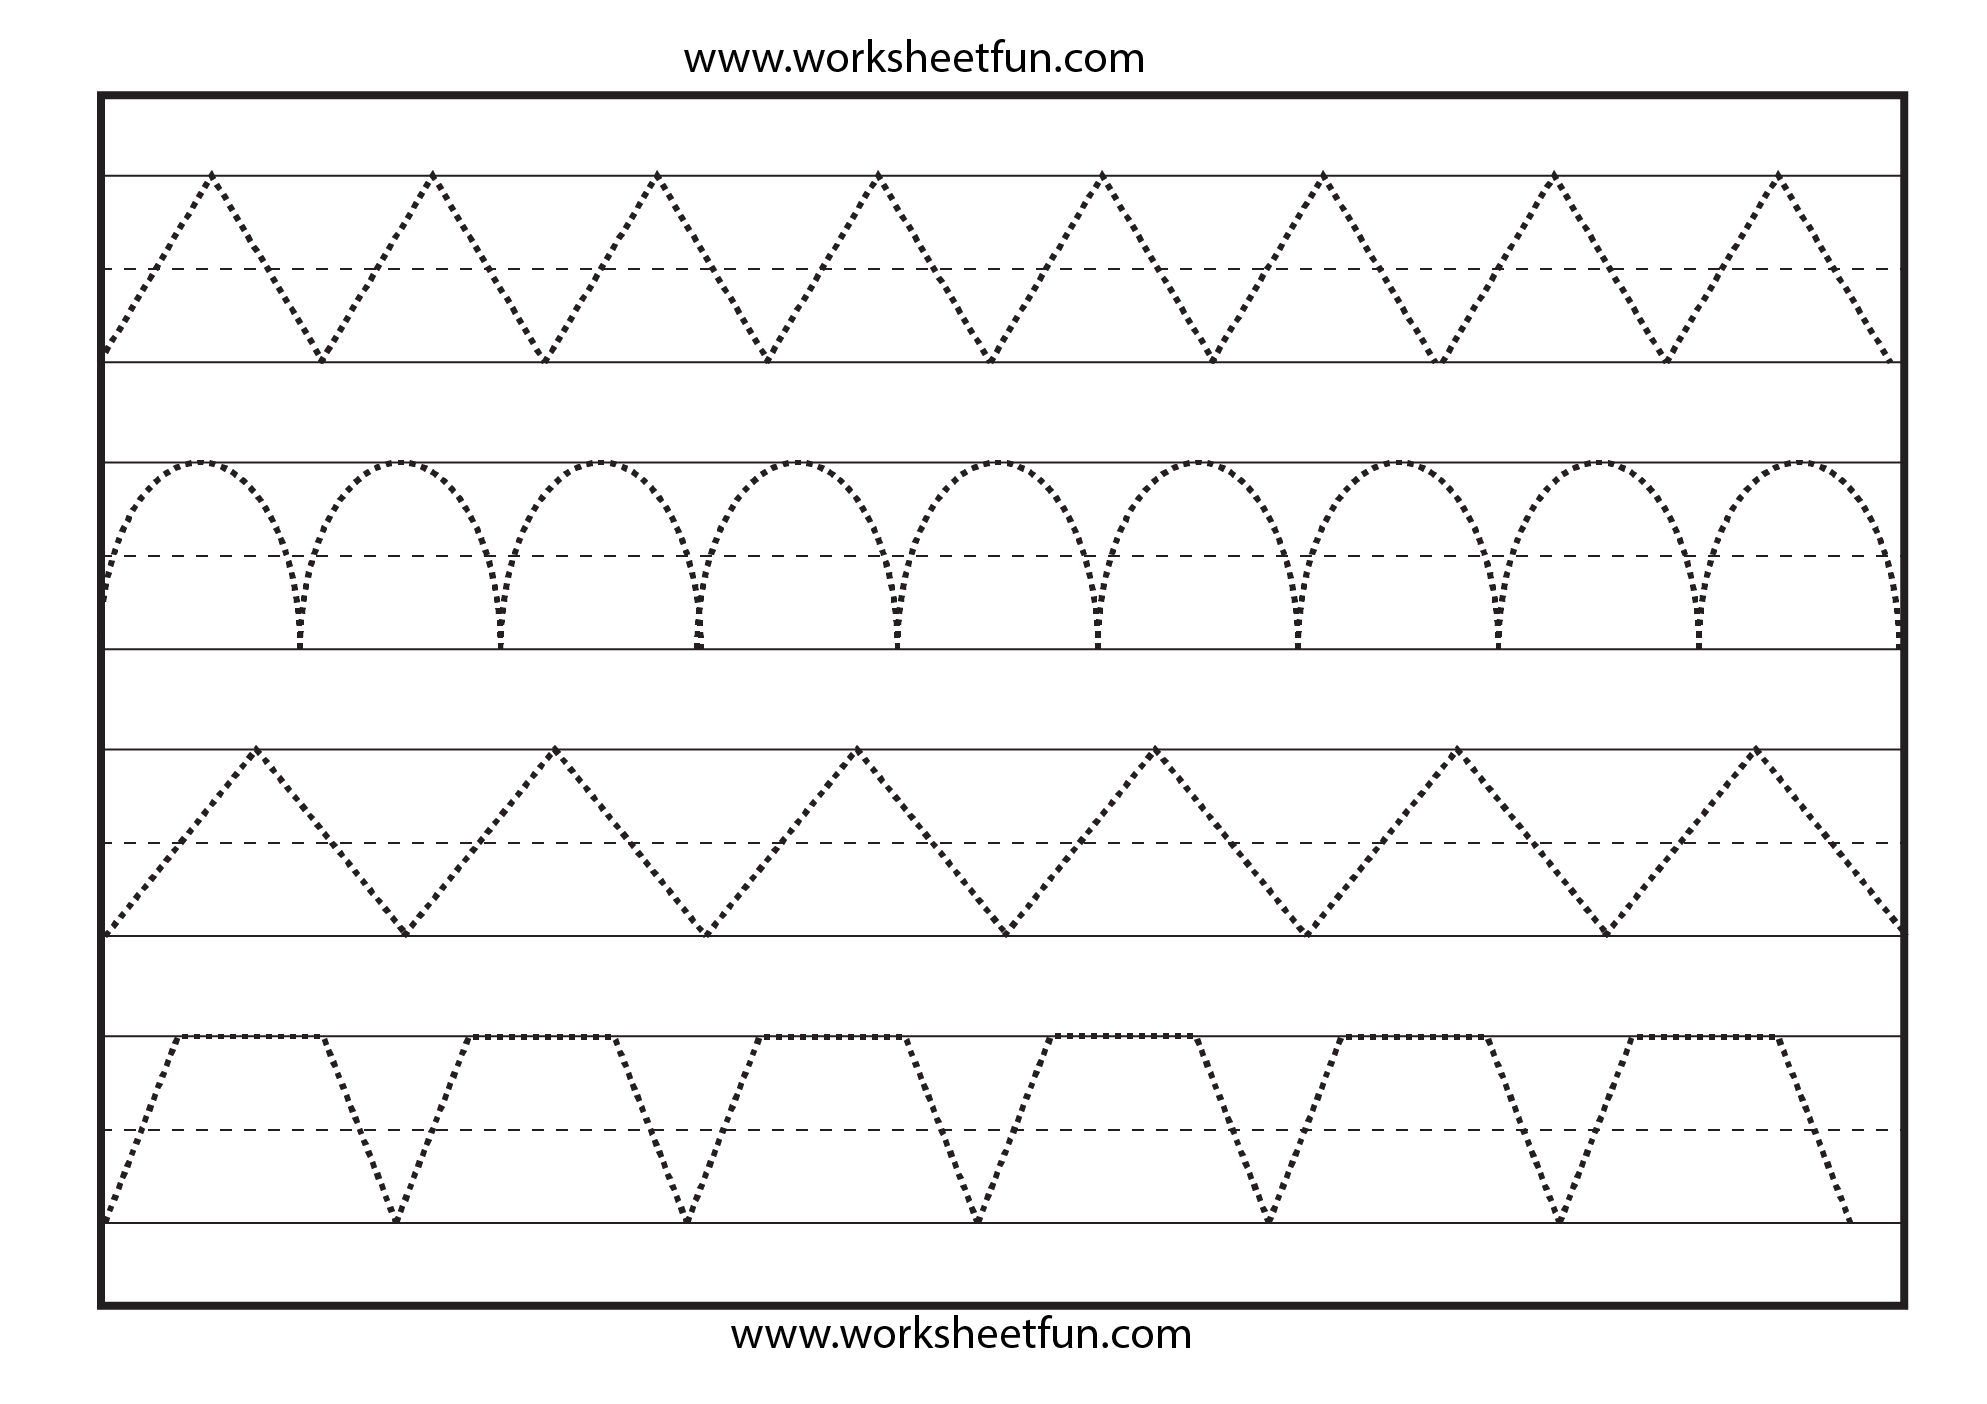 Worksheets Tracing Worksheet line tracing 1 worksheet free printable worksheets worksheetfun preschool tracing